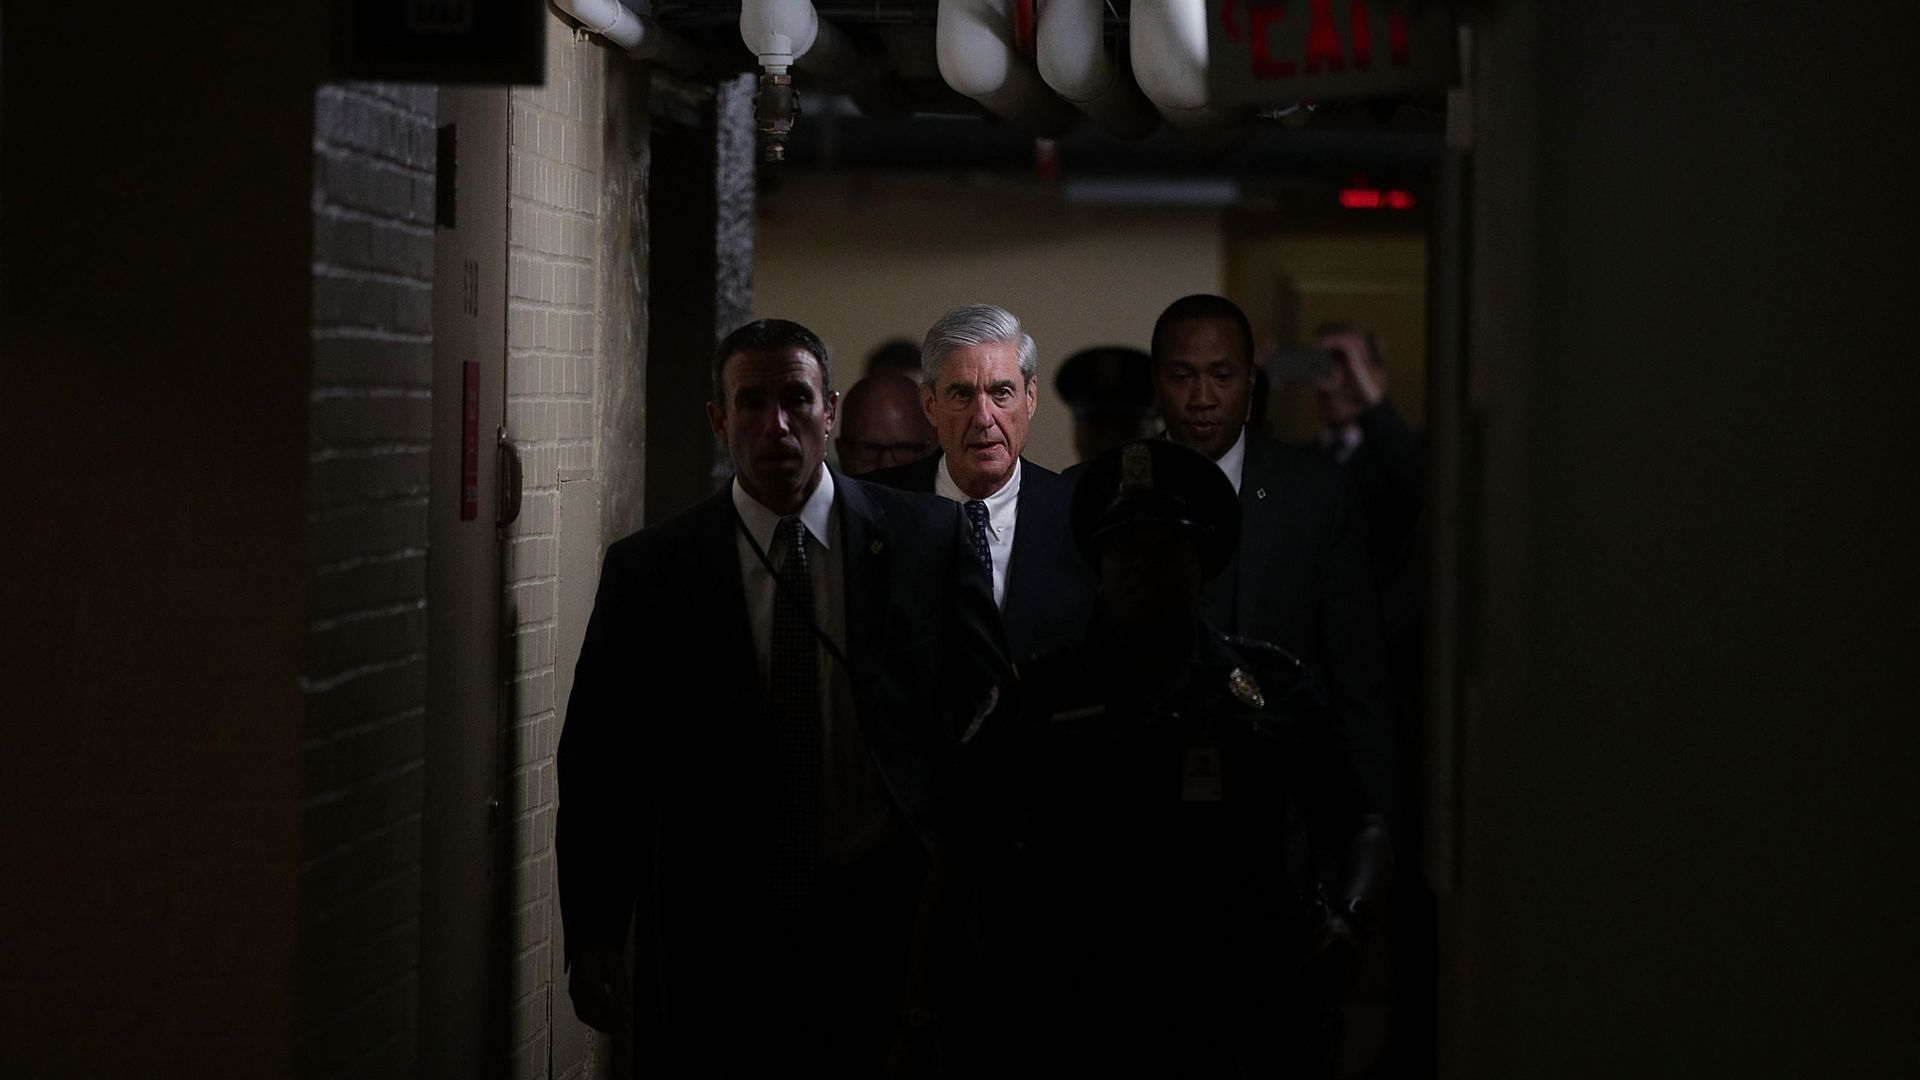 In this image, Mueller walks down a dark hallway.